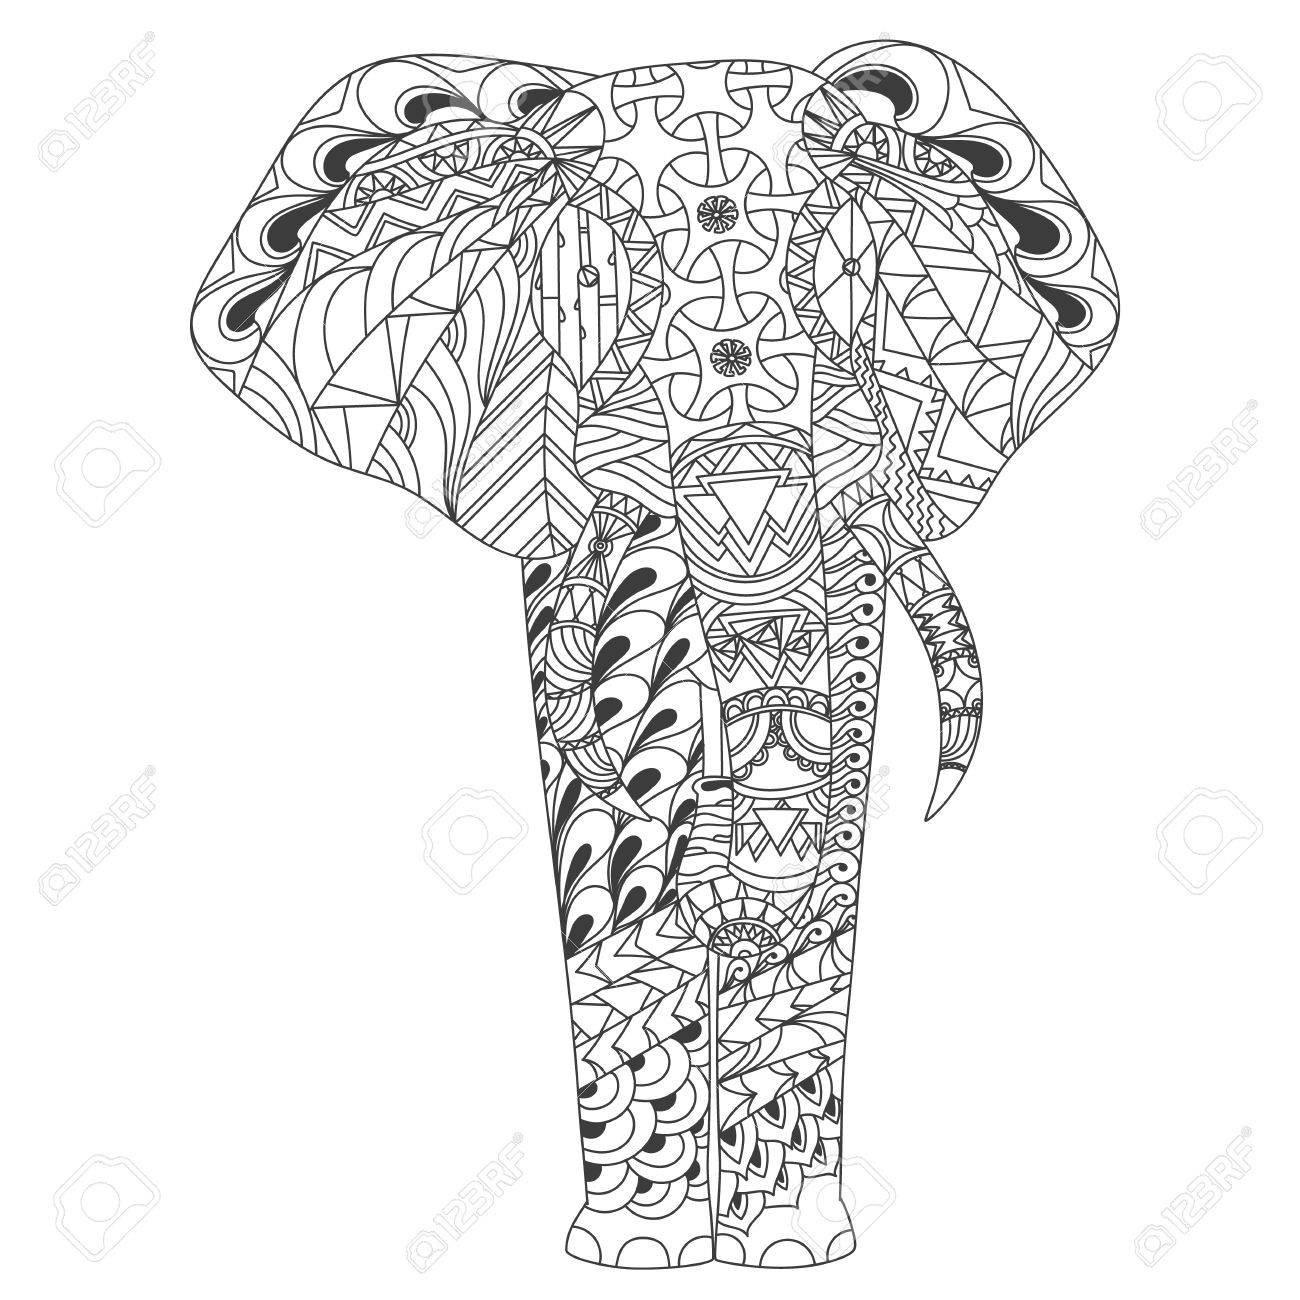 patterned elephant inspired style illustrion royalty free cliparts